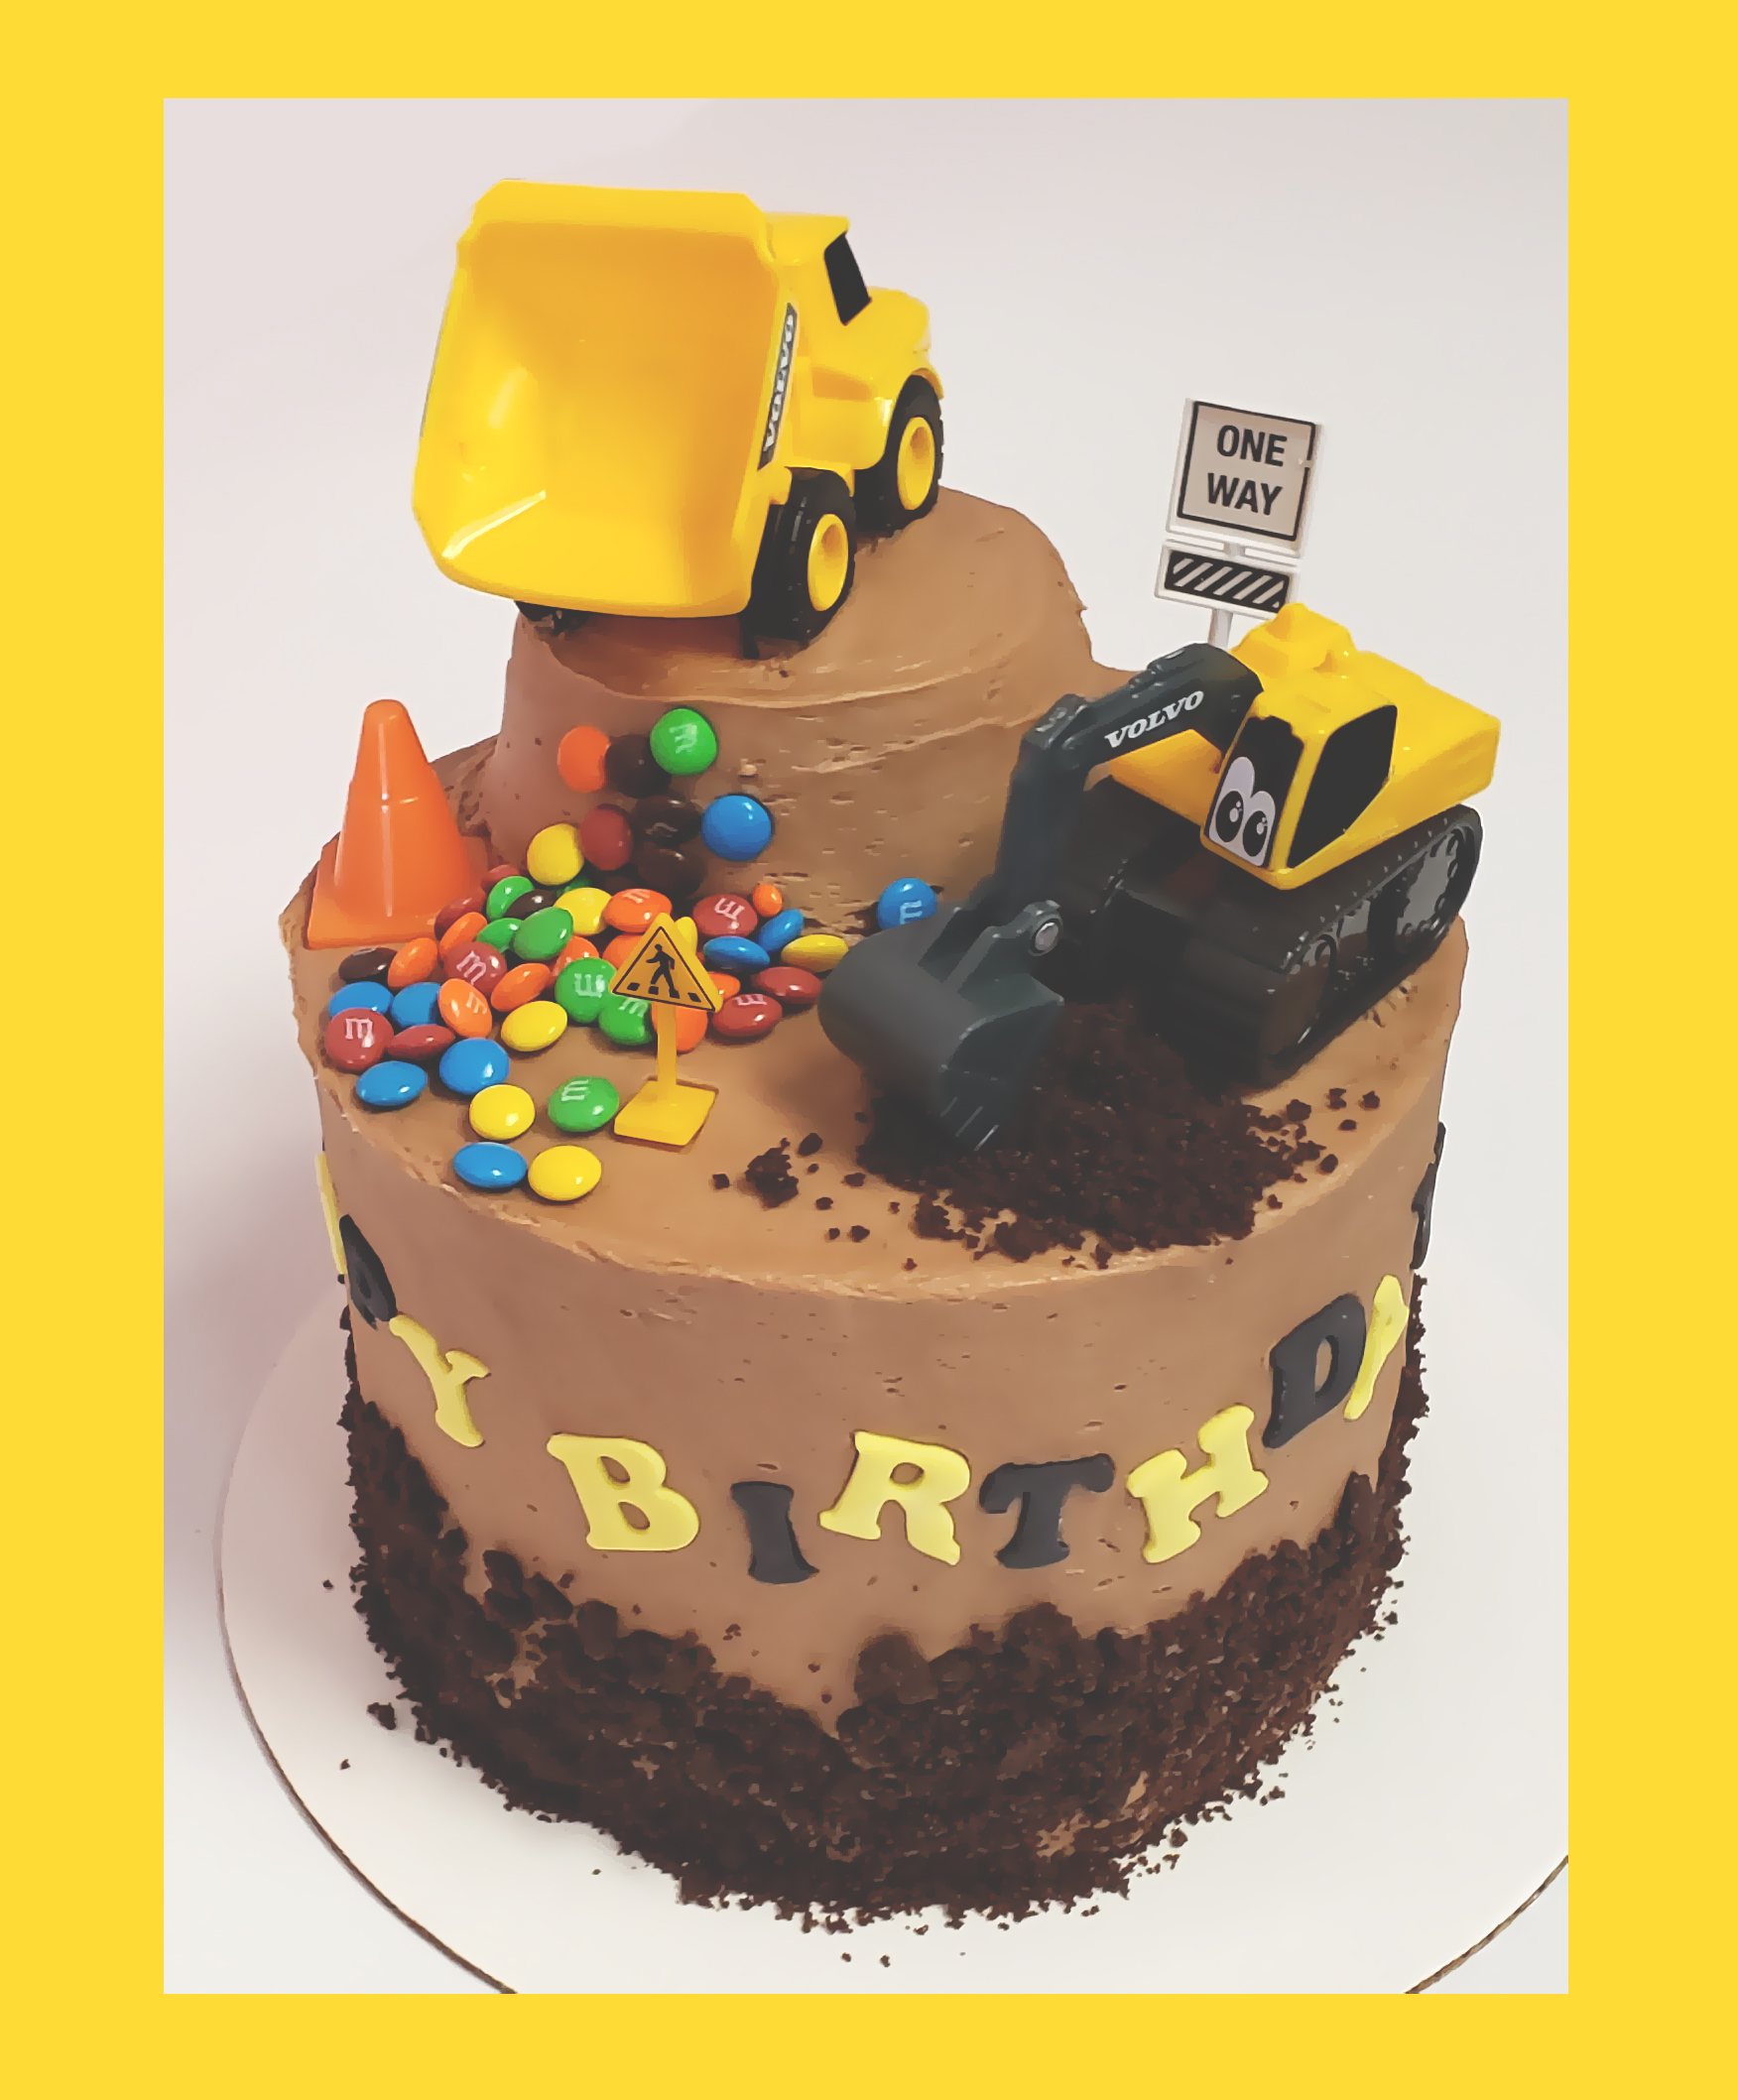 Construction Cake 2020 Framed